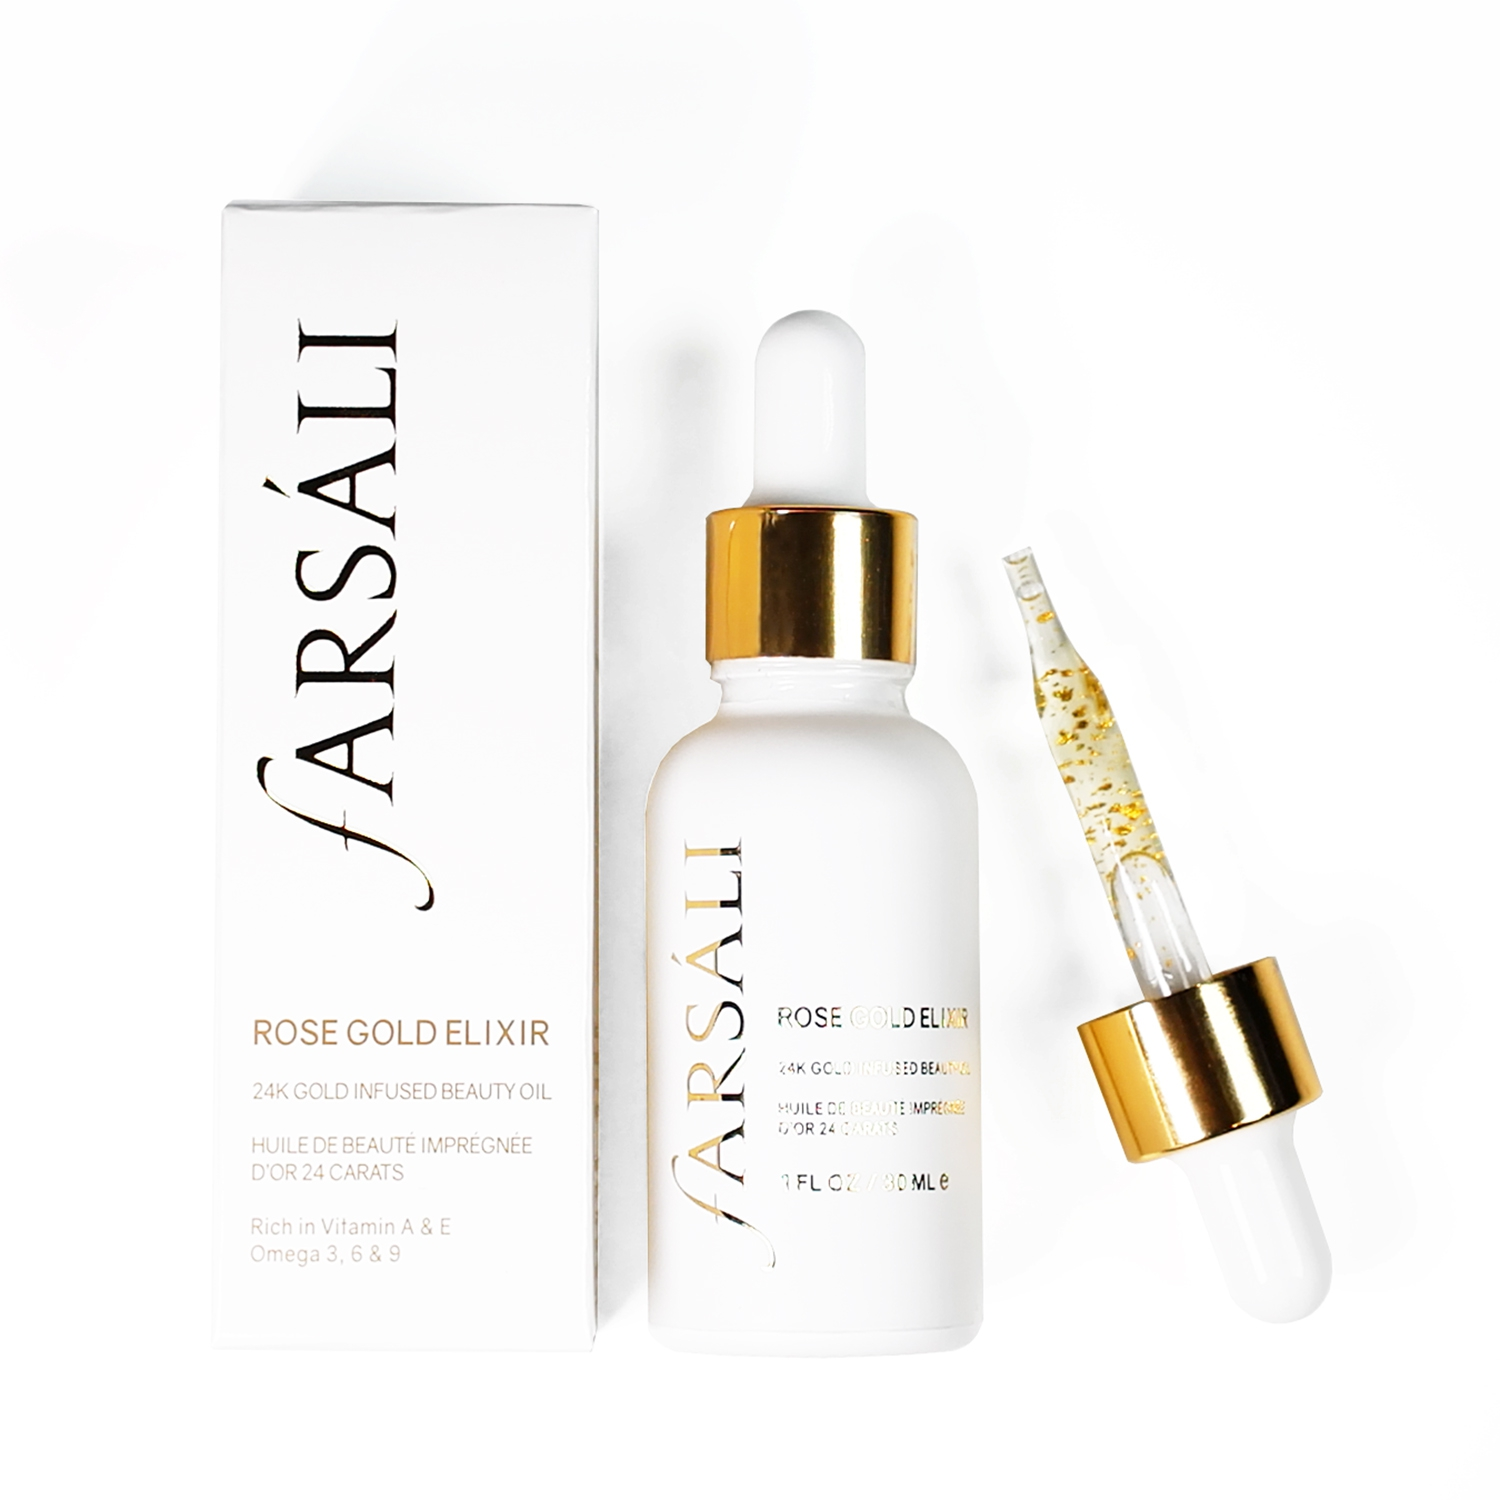 9a2a0031557 Farsali Rose Gold Elixir is a facial oil with tiny particles of 24-karat  gold floating in it. This beauty oil has forever changed my makeup routine  and ...